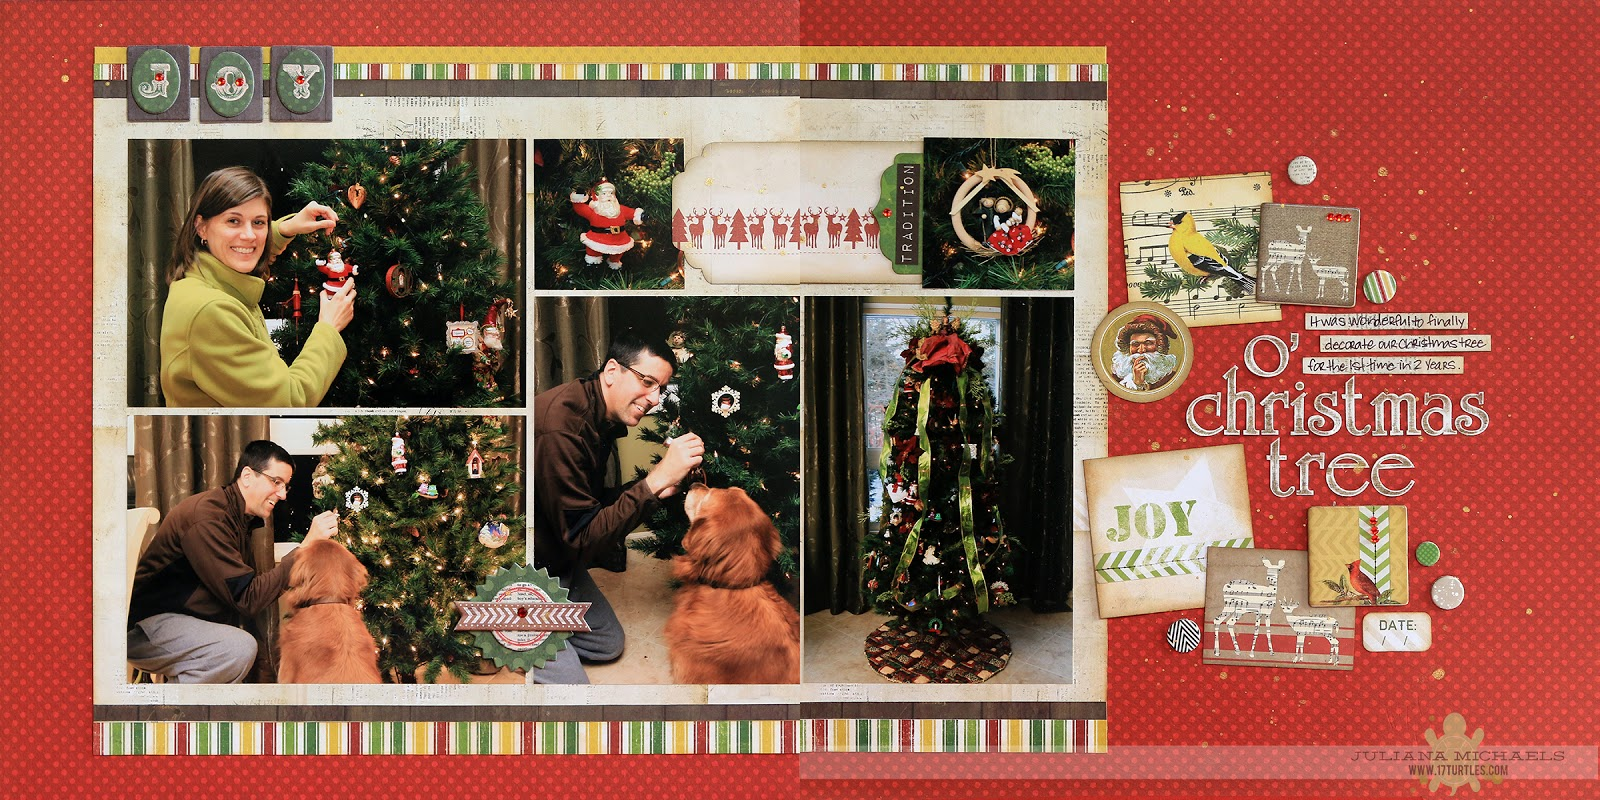 http://2.bp.blogspot.com/-c40RZL7KkNg/VGABCagu3CI/AAAAAAAASto/92pufZ2gQsM/s1600/O_Christmas_Tree_Scrapbook_Page_Juliana_Michaels_BoBunny_Christmas_Collage_01AB.jpg